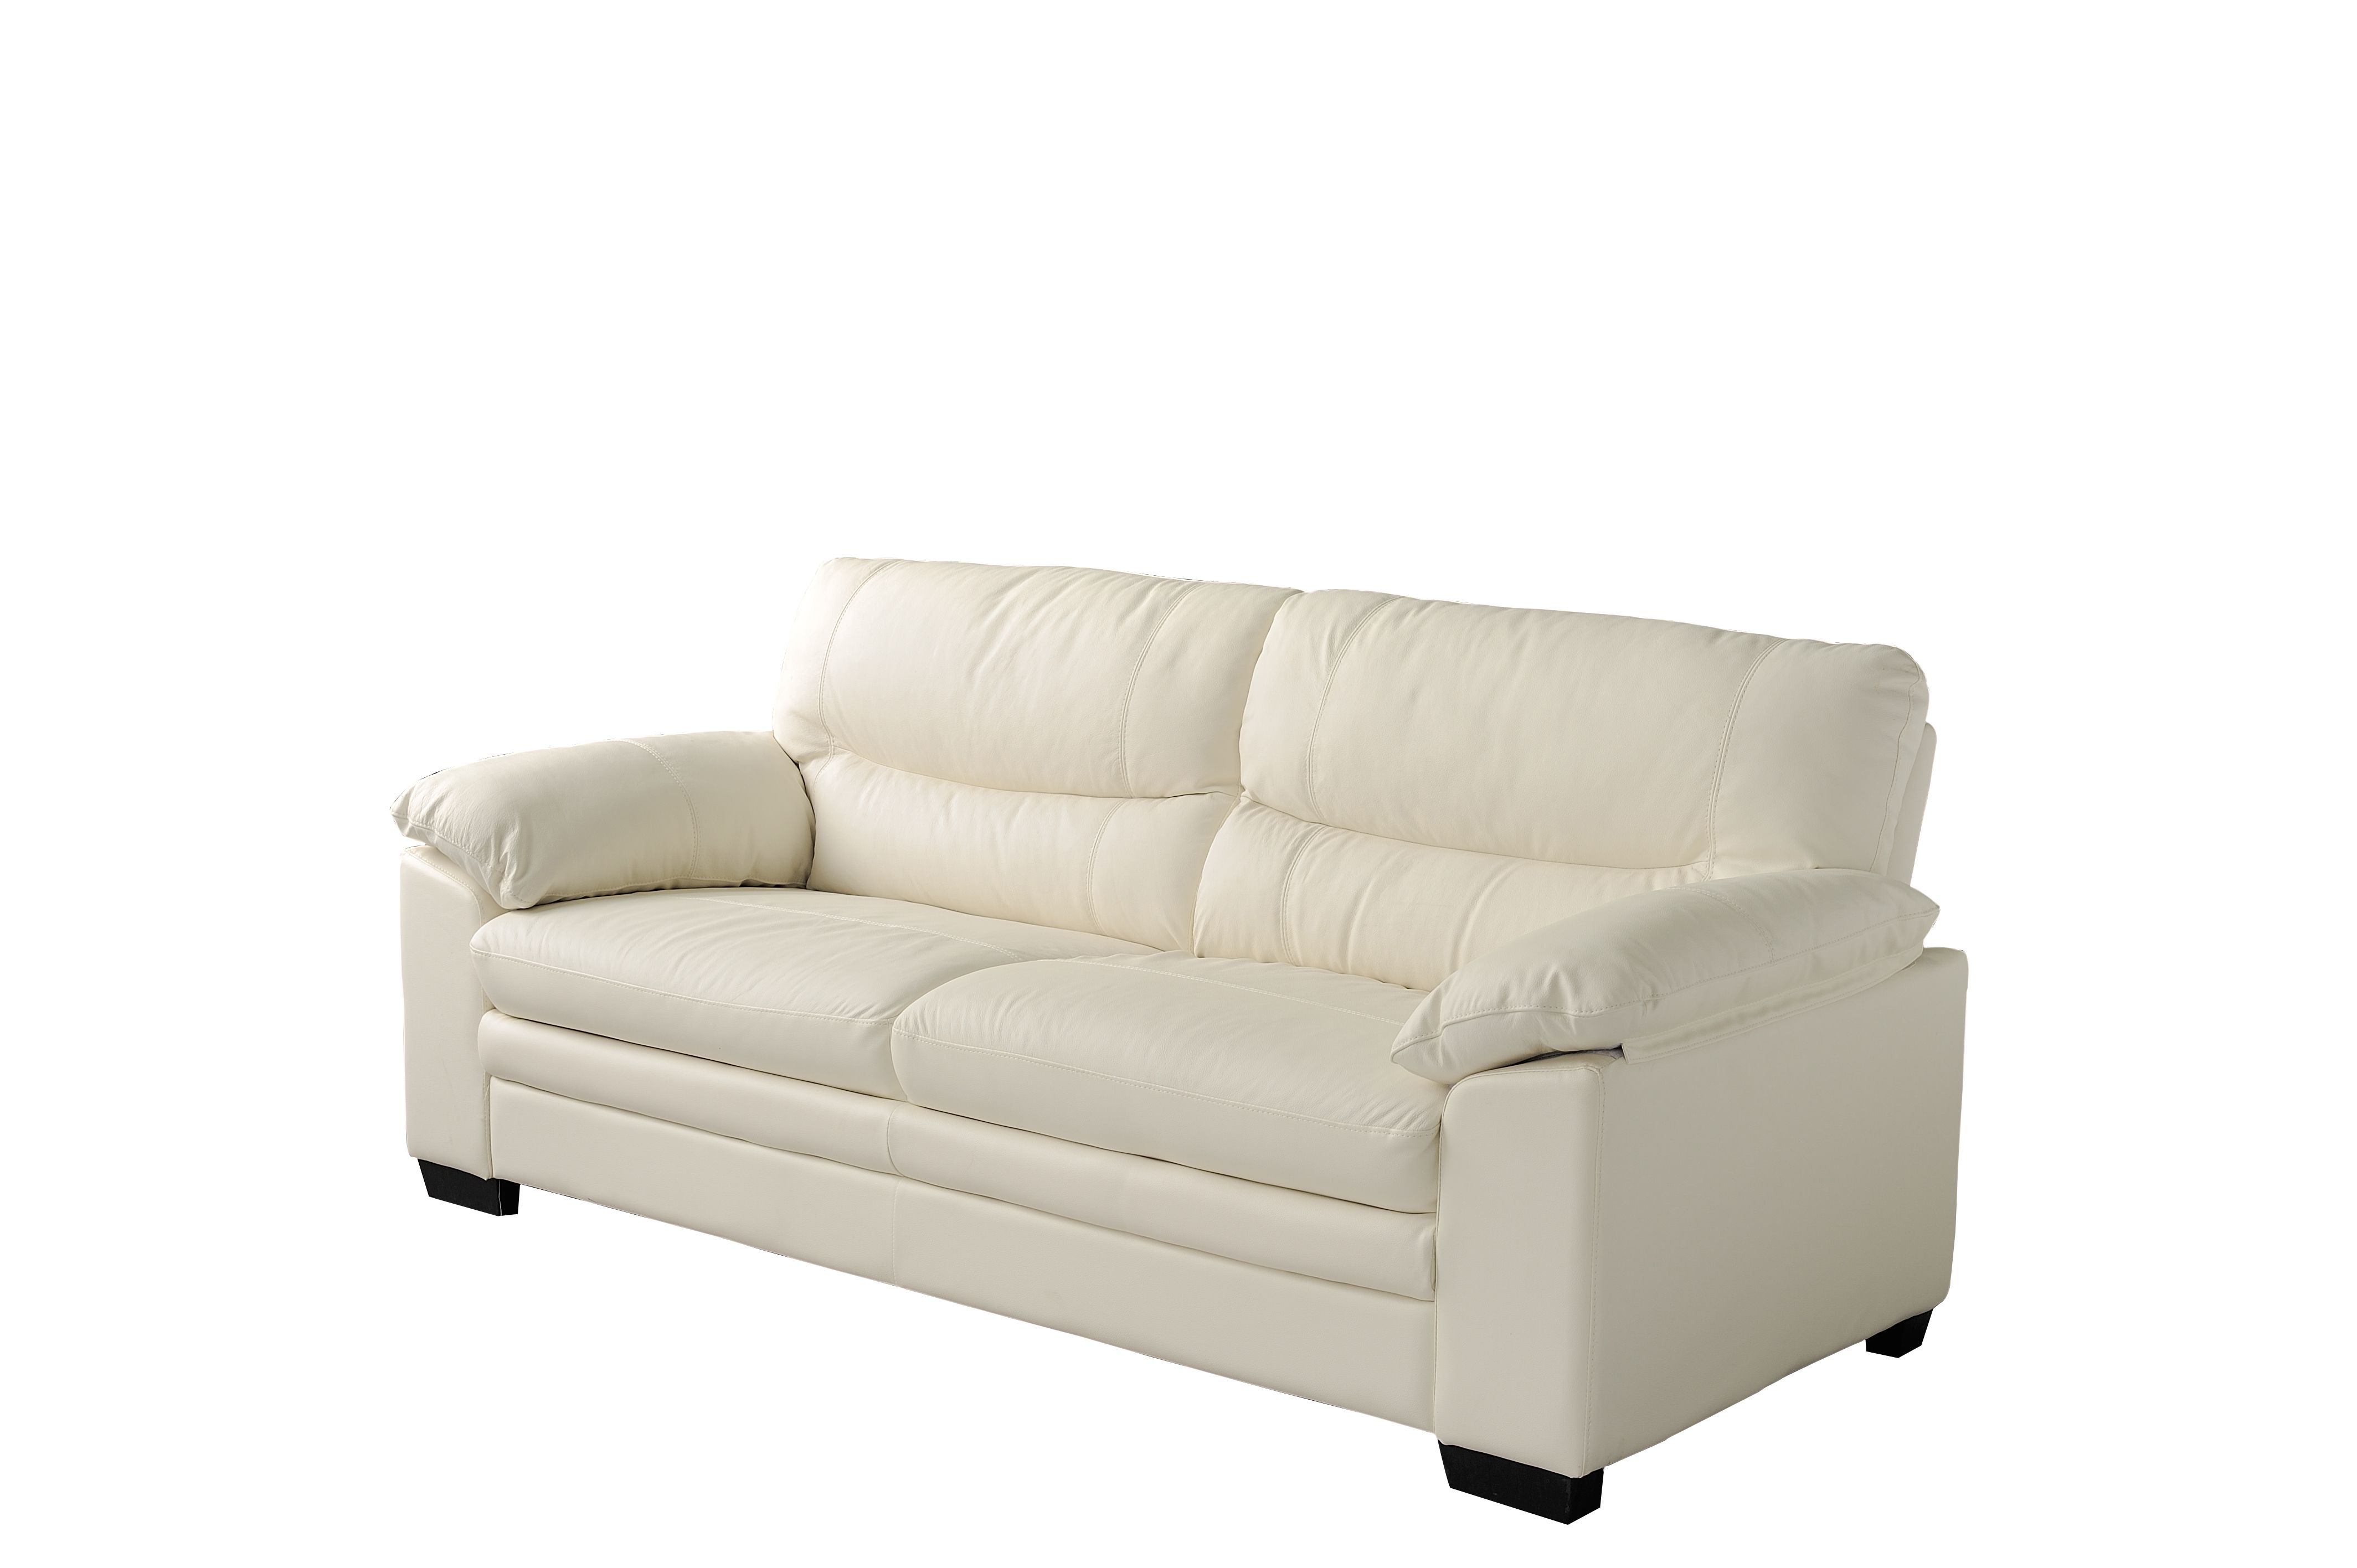 Big Sofa Clearance Sale Reno Sectional only $1399 including tax